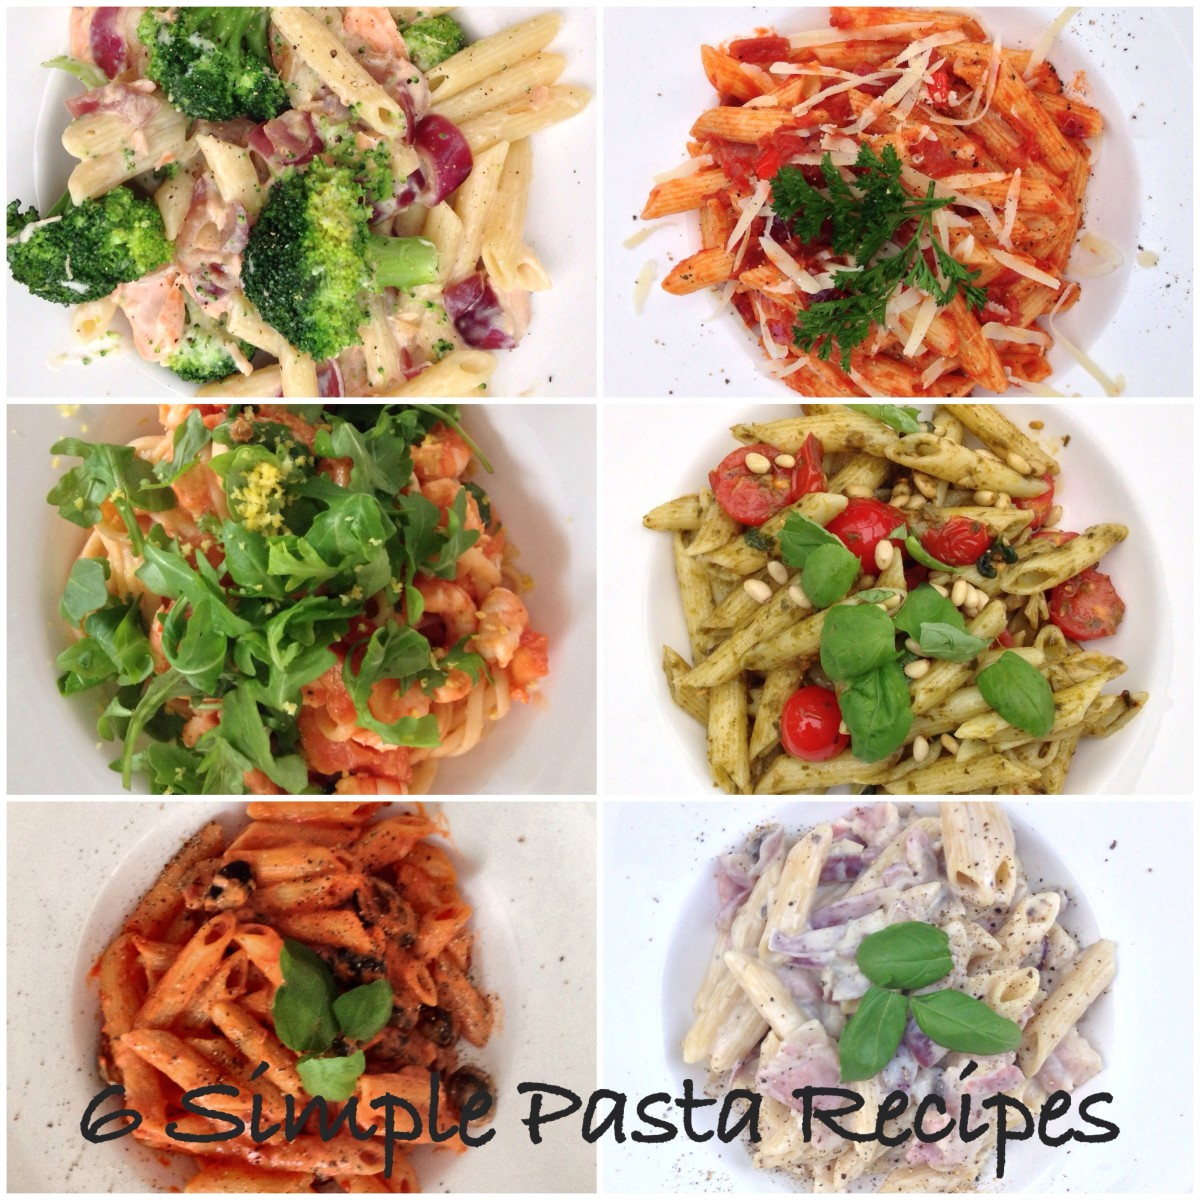 6 Simple Pasta Recipes